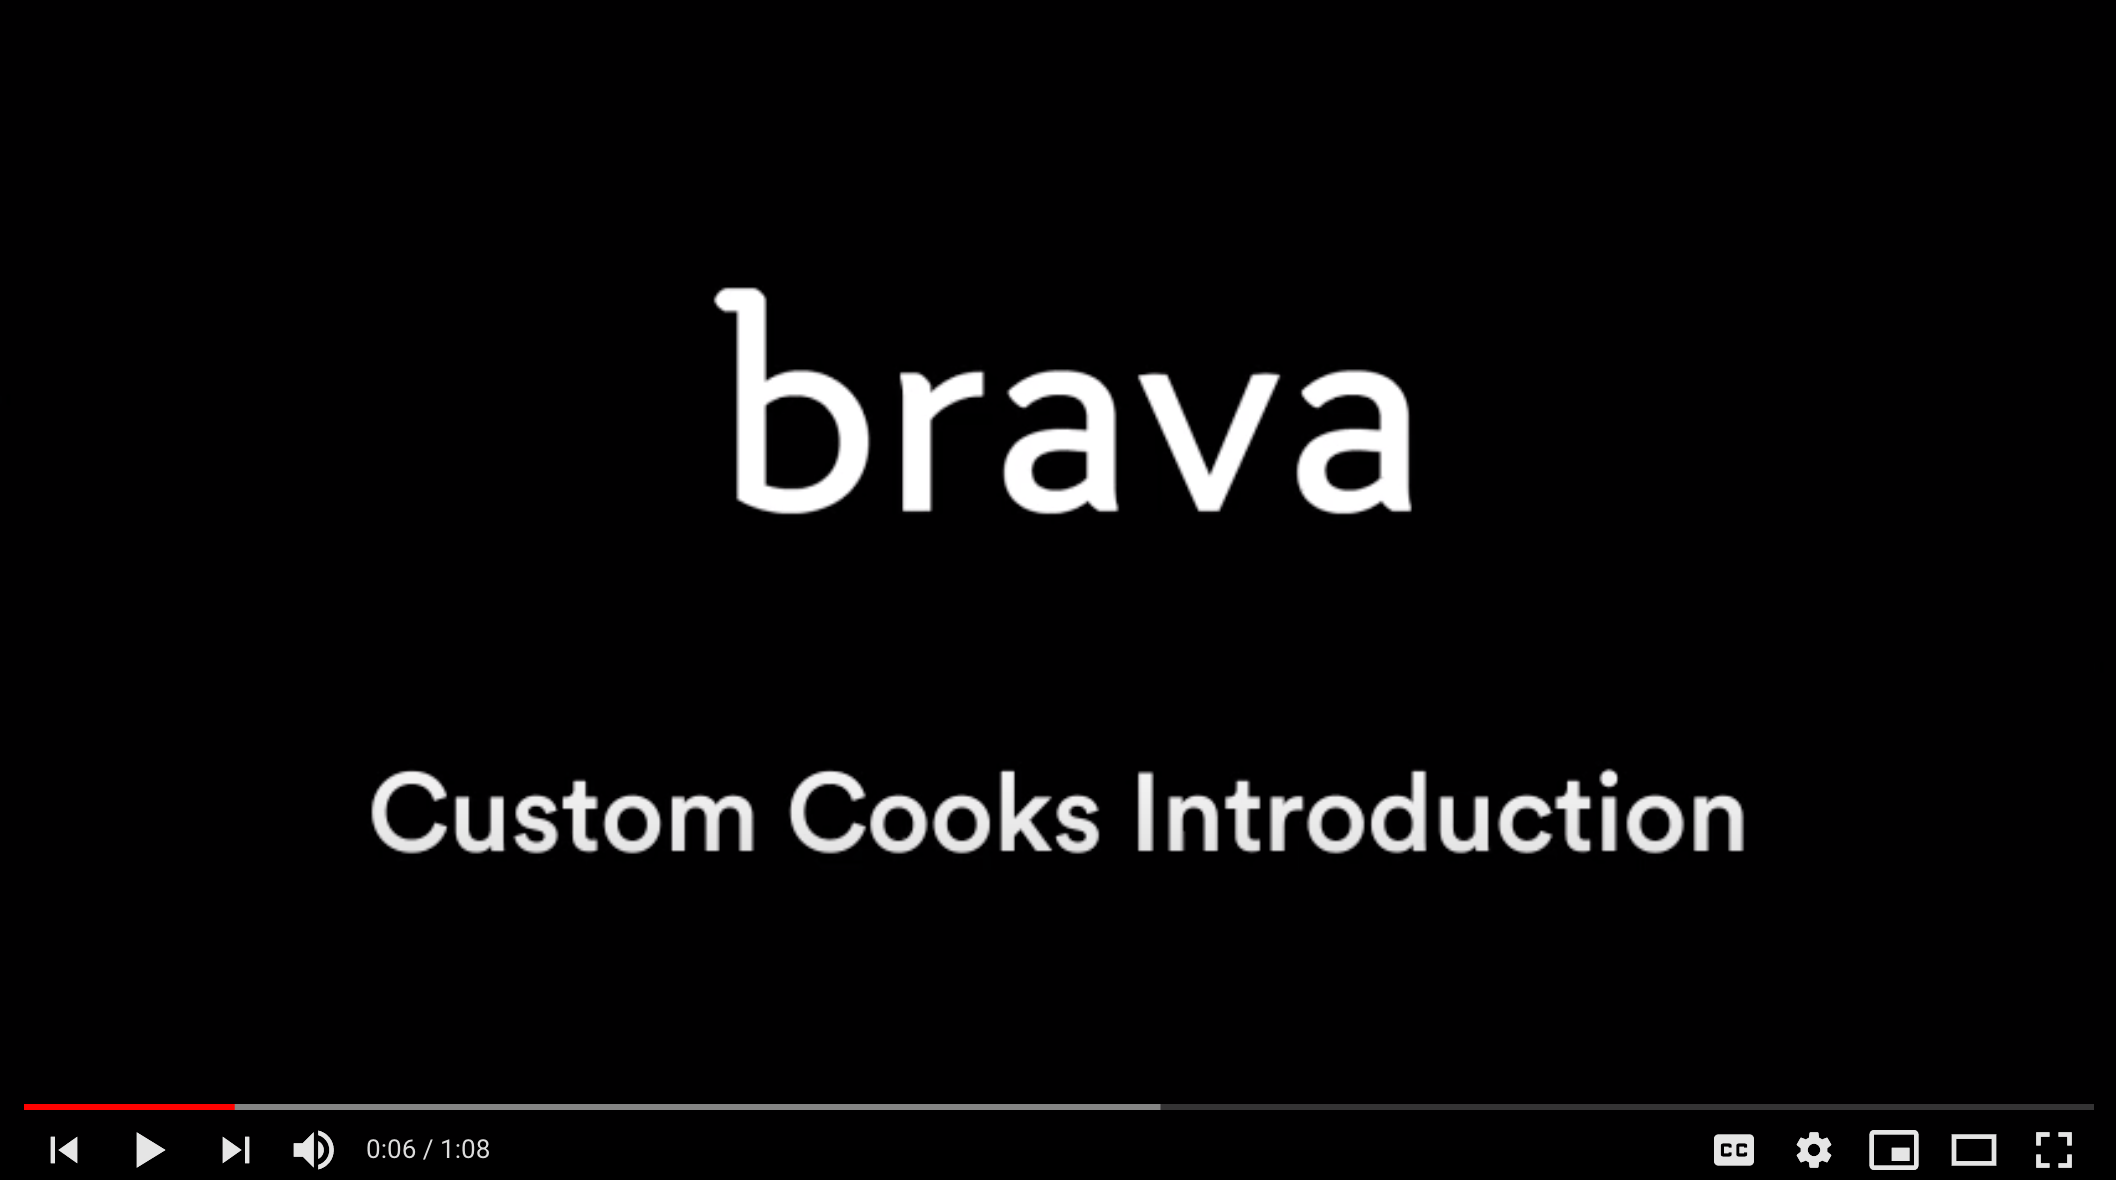 custom_cook_1_-_intro.png